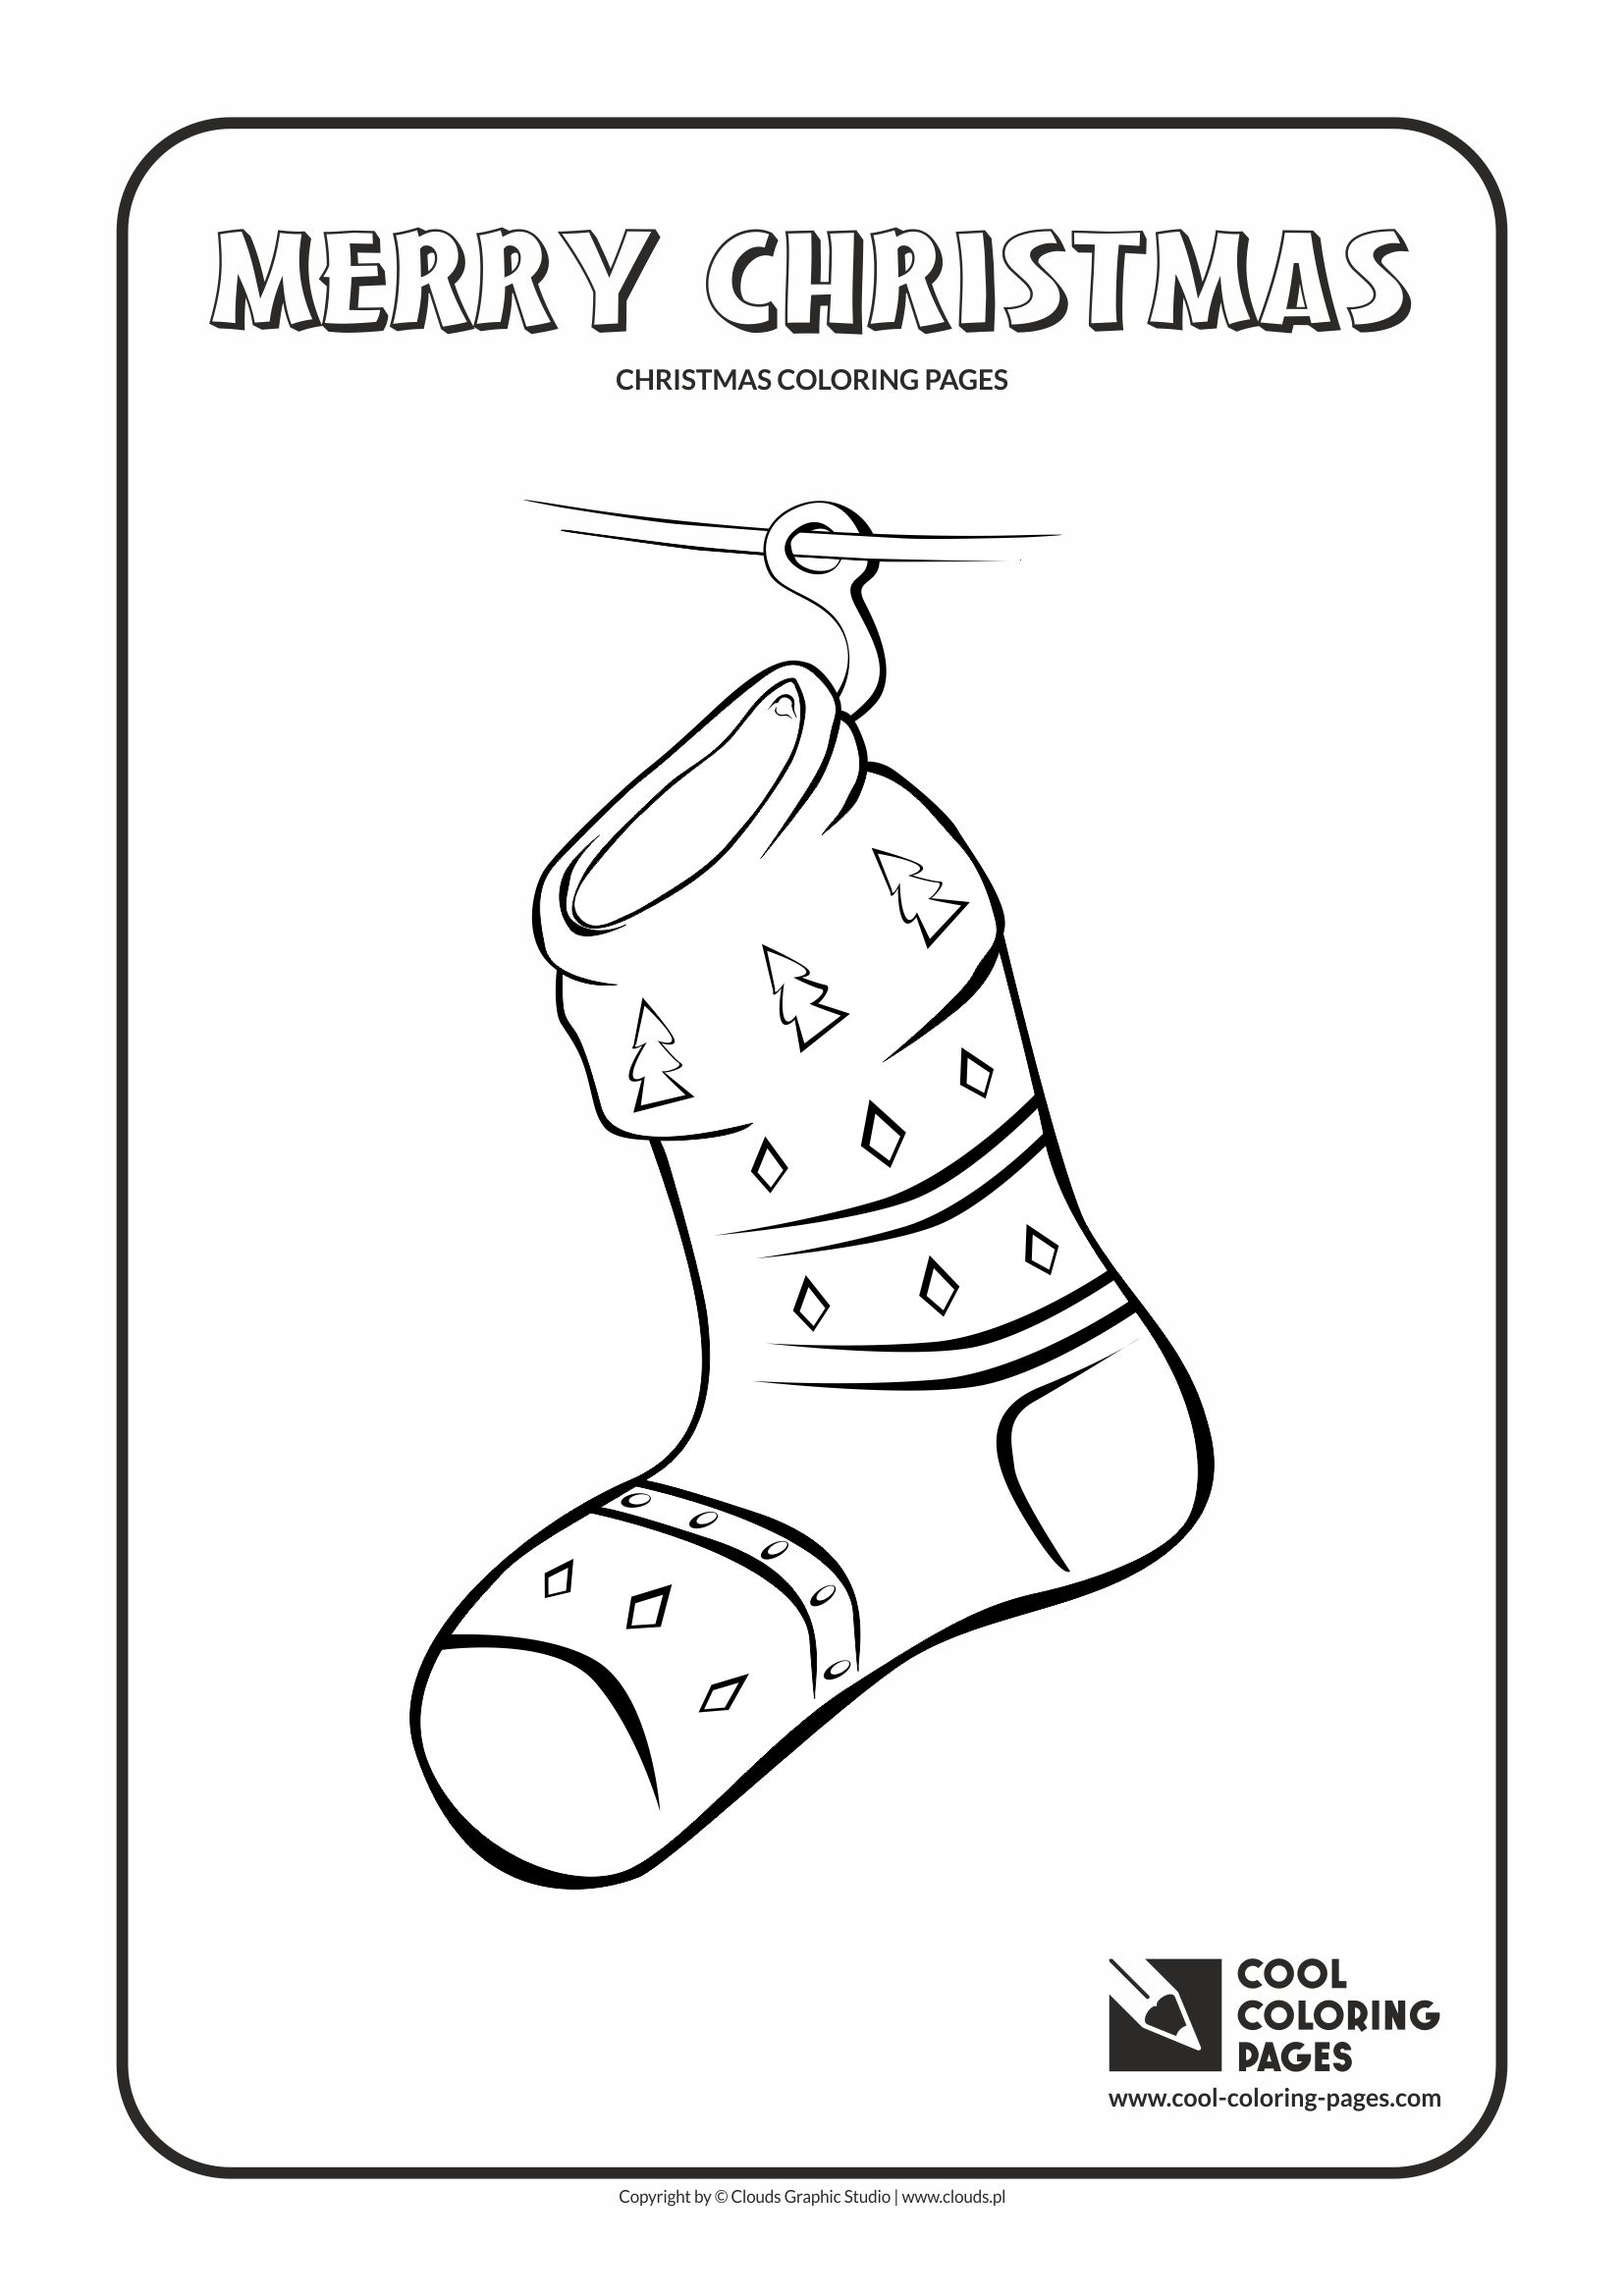 Cool Coloring Pages - Holidays / Christmas sock / Coloring page with Christmas sock